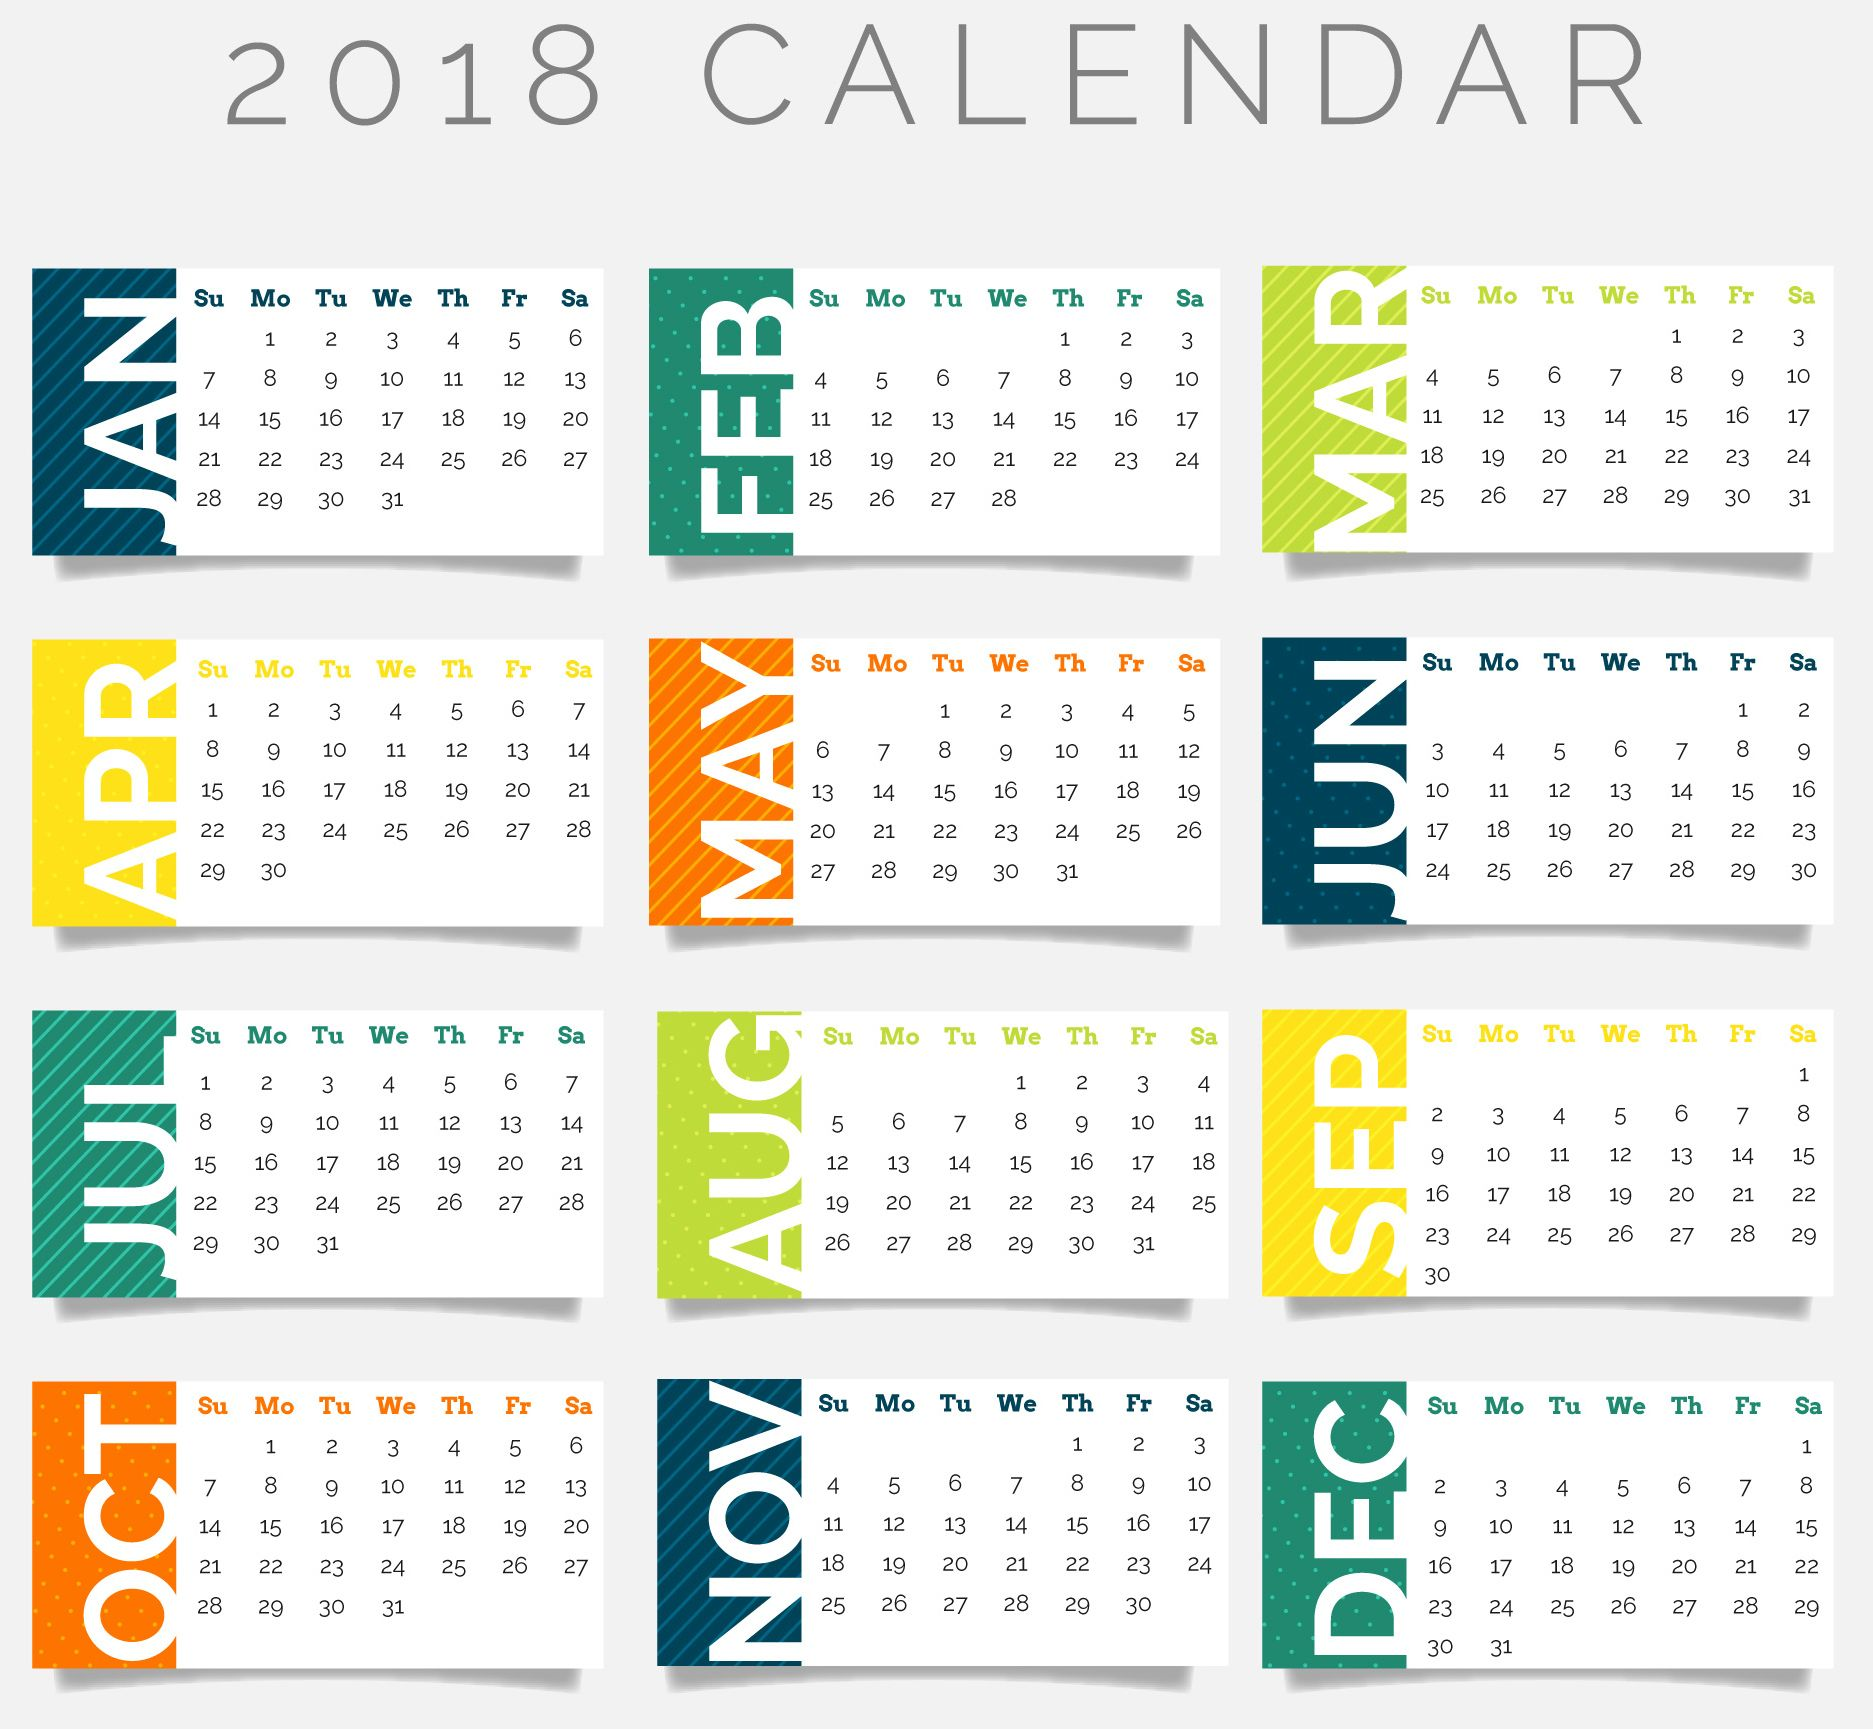 2018 Calendar Wallpapers - WallpaperSafari